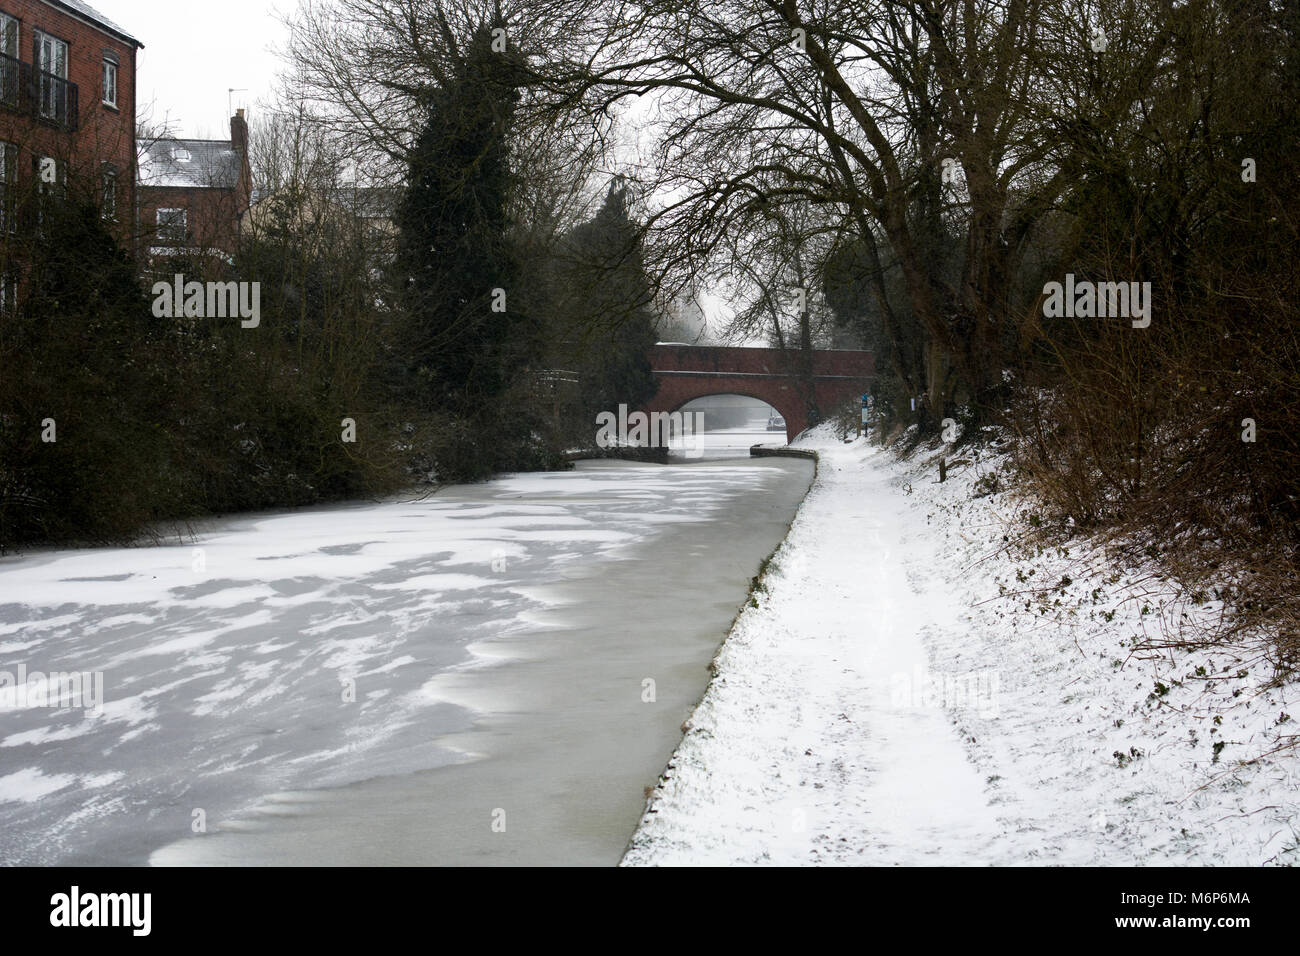 Frozen Grand Union Canal and snowy towpath, Warwick, Warwickshire, England, UK - Stock Image